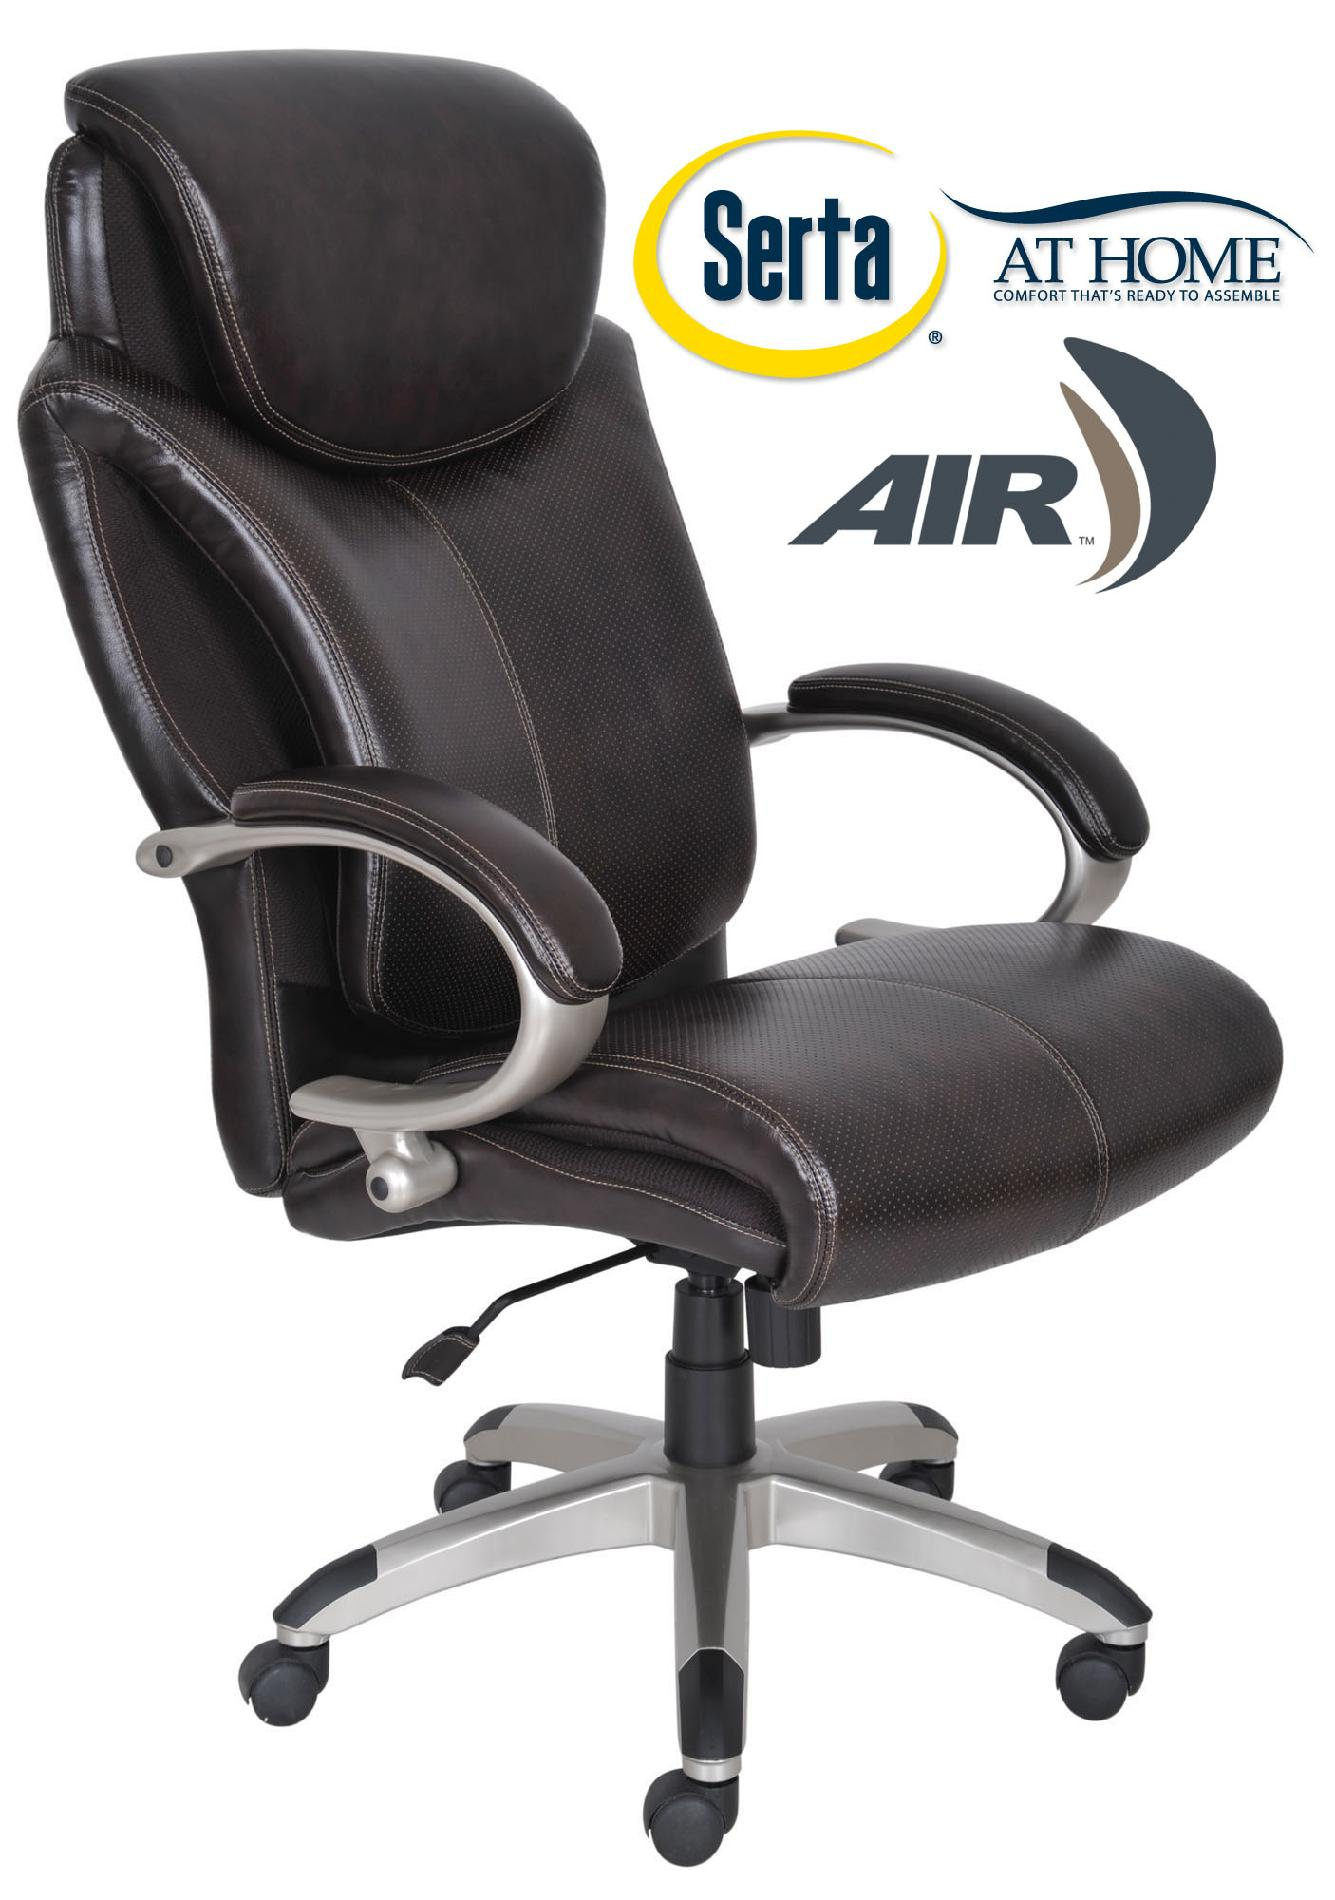 serta bonded leather executive chair desk inexpensive air health and wellness big tall office